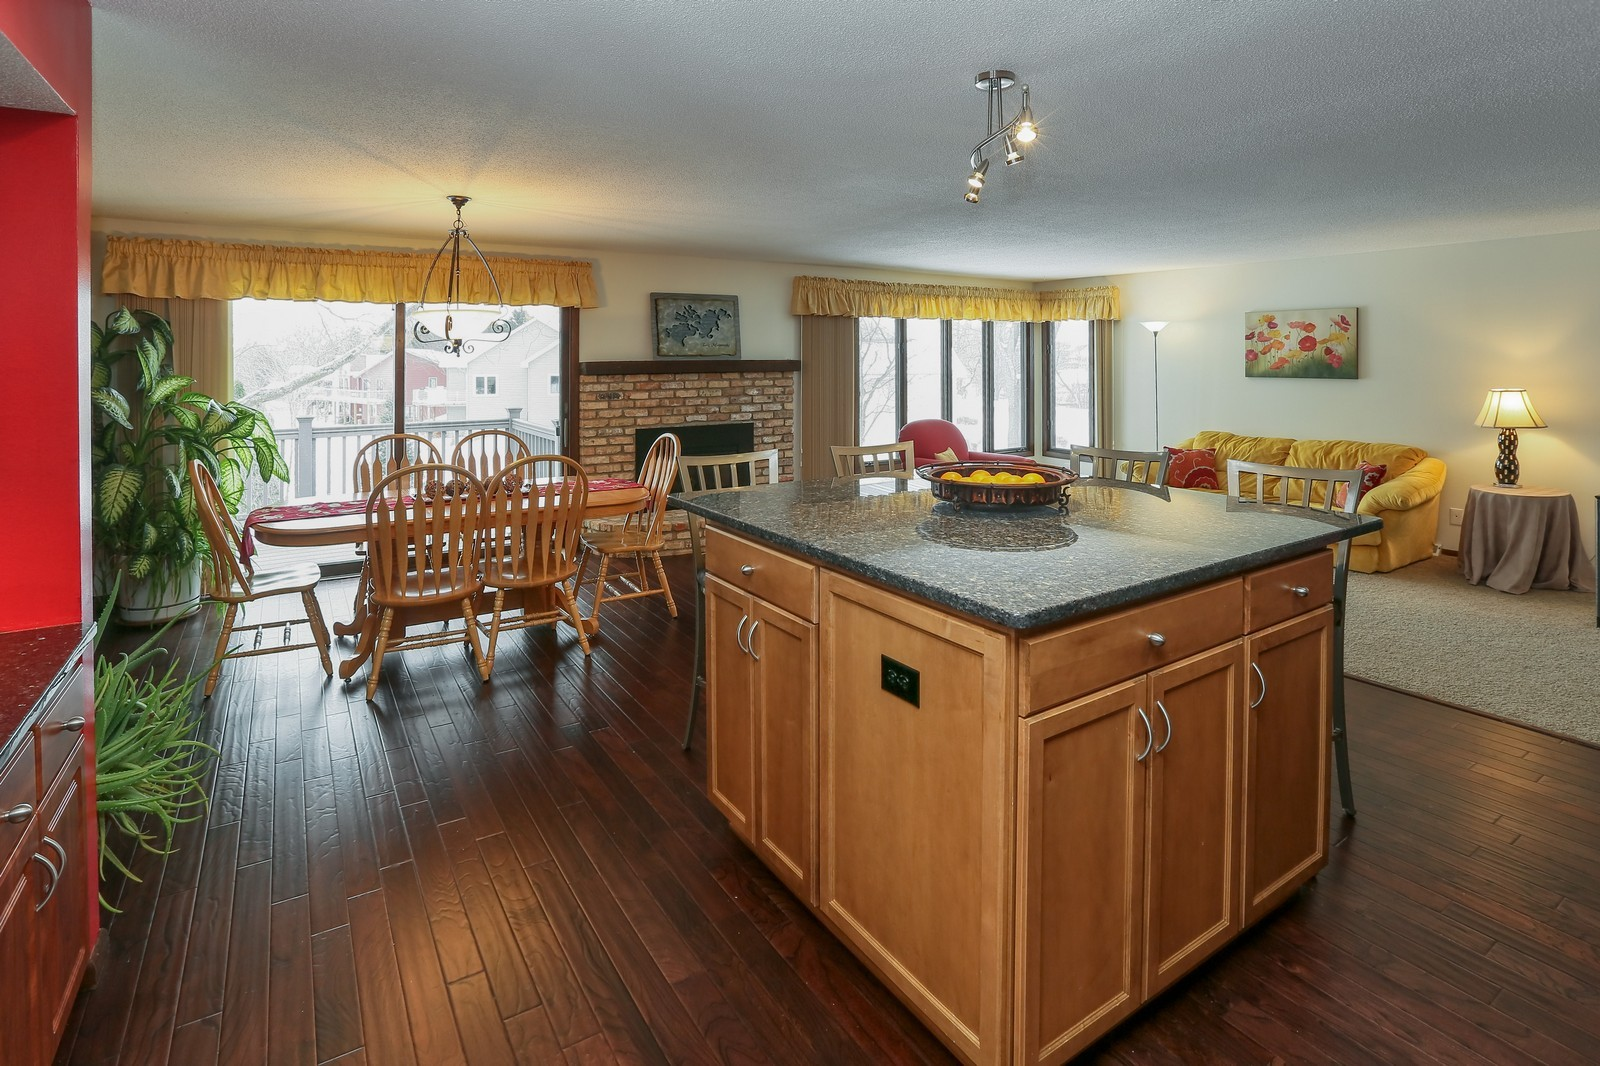 Real Estate Photography - 3250 Williams Lane, Minnetrista, MN, 55364 - Kitchen